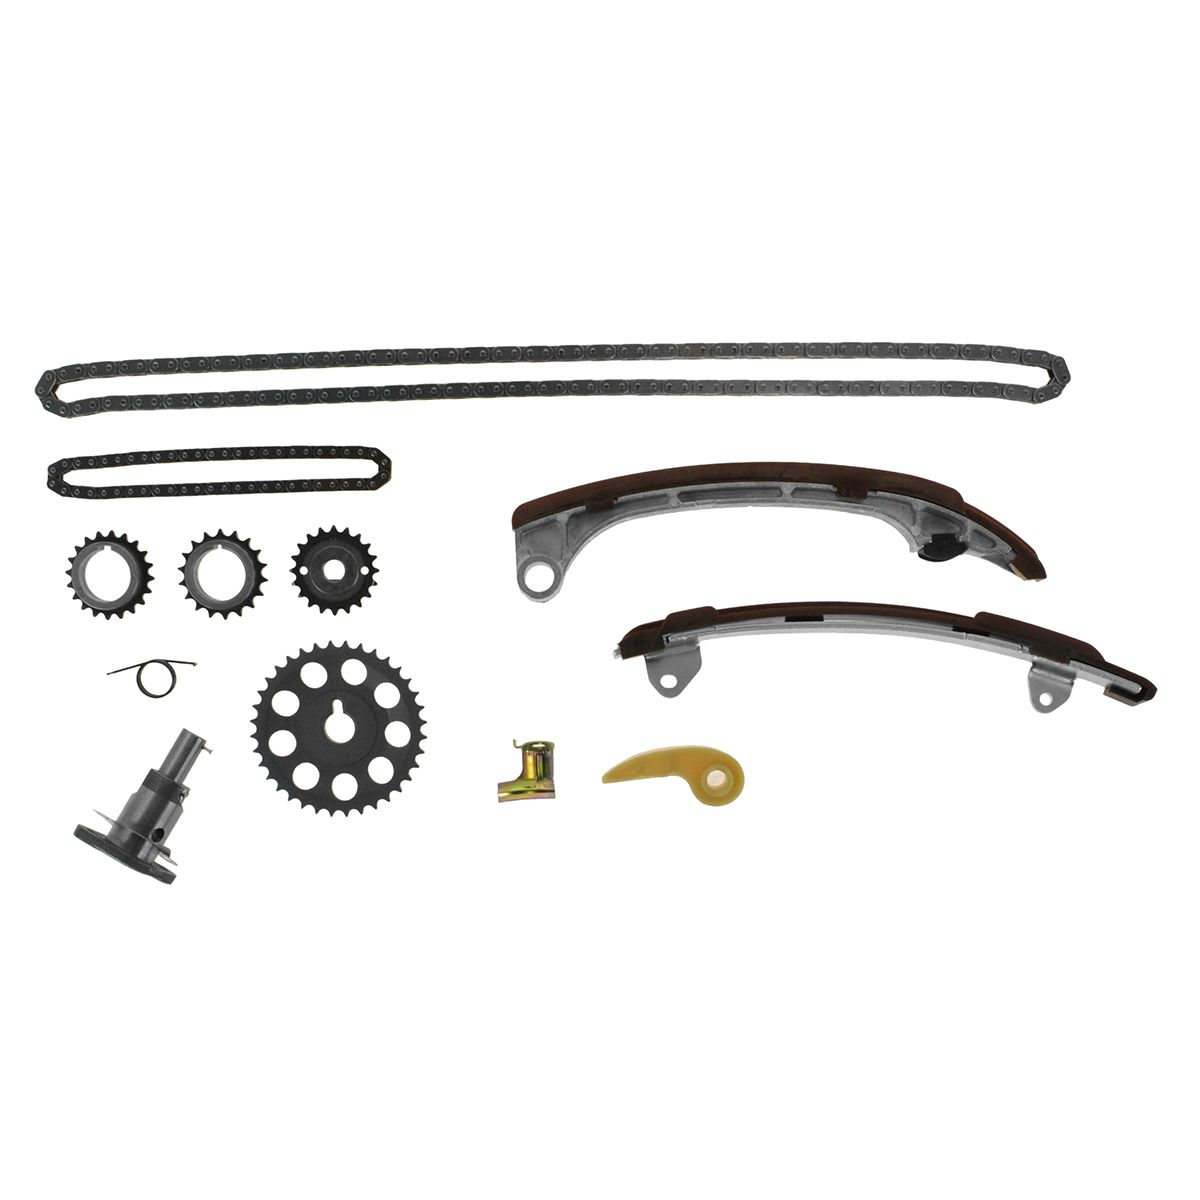 Timing & Oil Pump Chain Kit for Camry Corolla Highlander